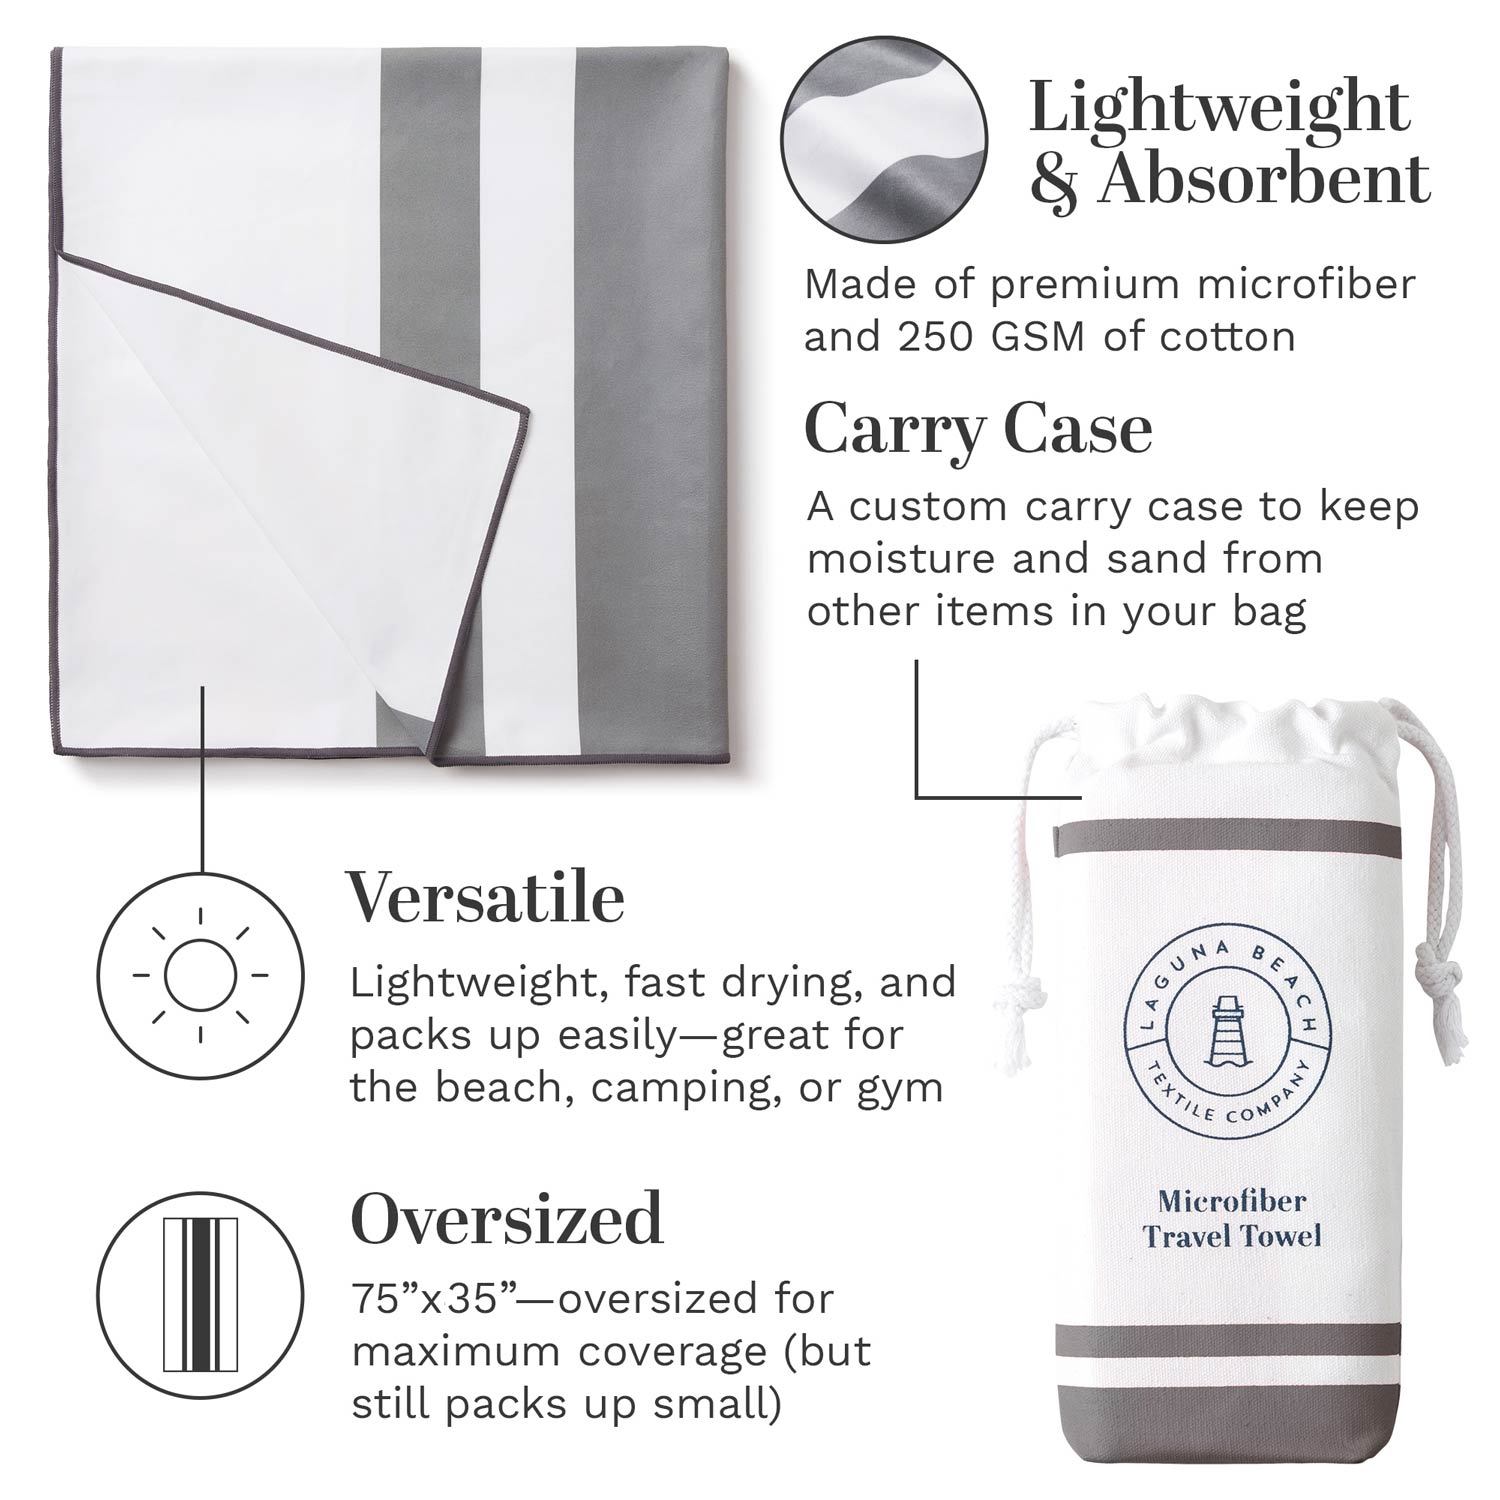 Infographic for gray microfiber beach towel highlighting how it is oversized, lightweight, and absorbent.